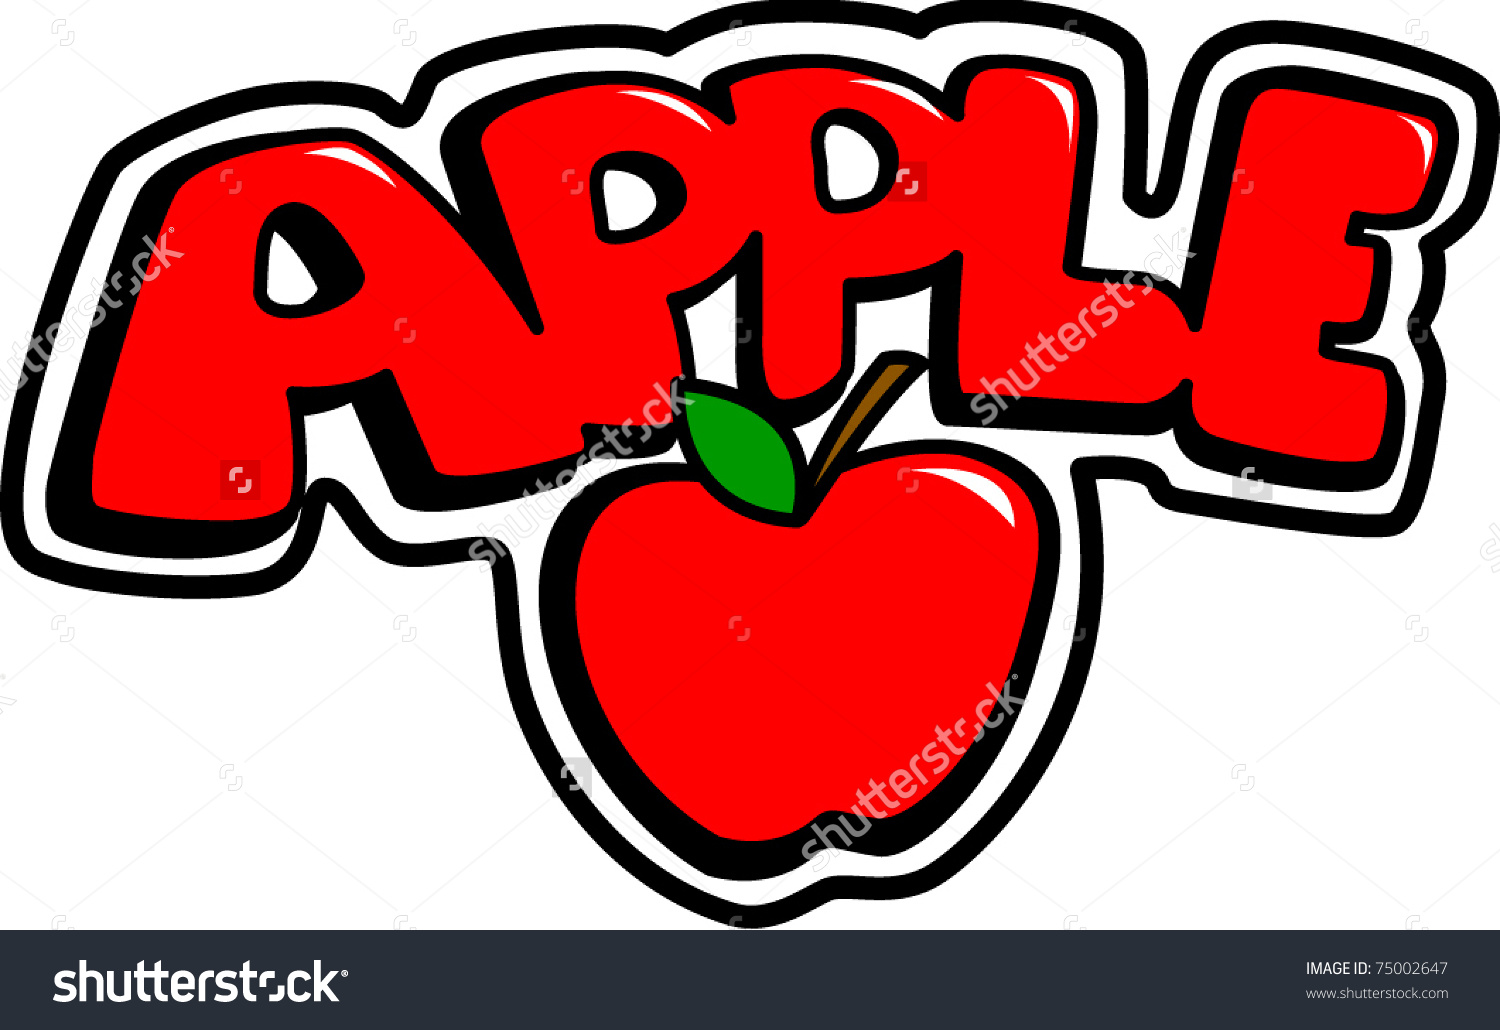 Apple with word apple clipart image free stock Apple Word Stock Vector 75002647 - Shutterstock image free stock